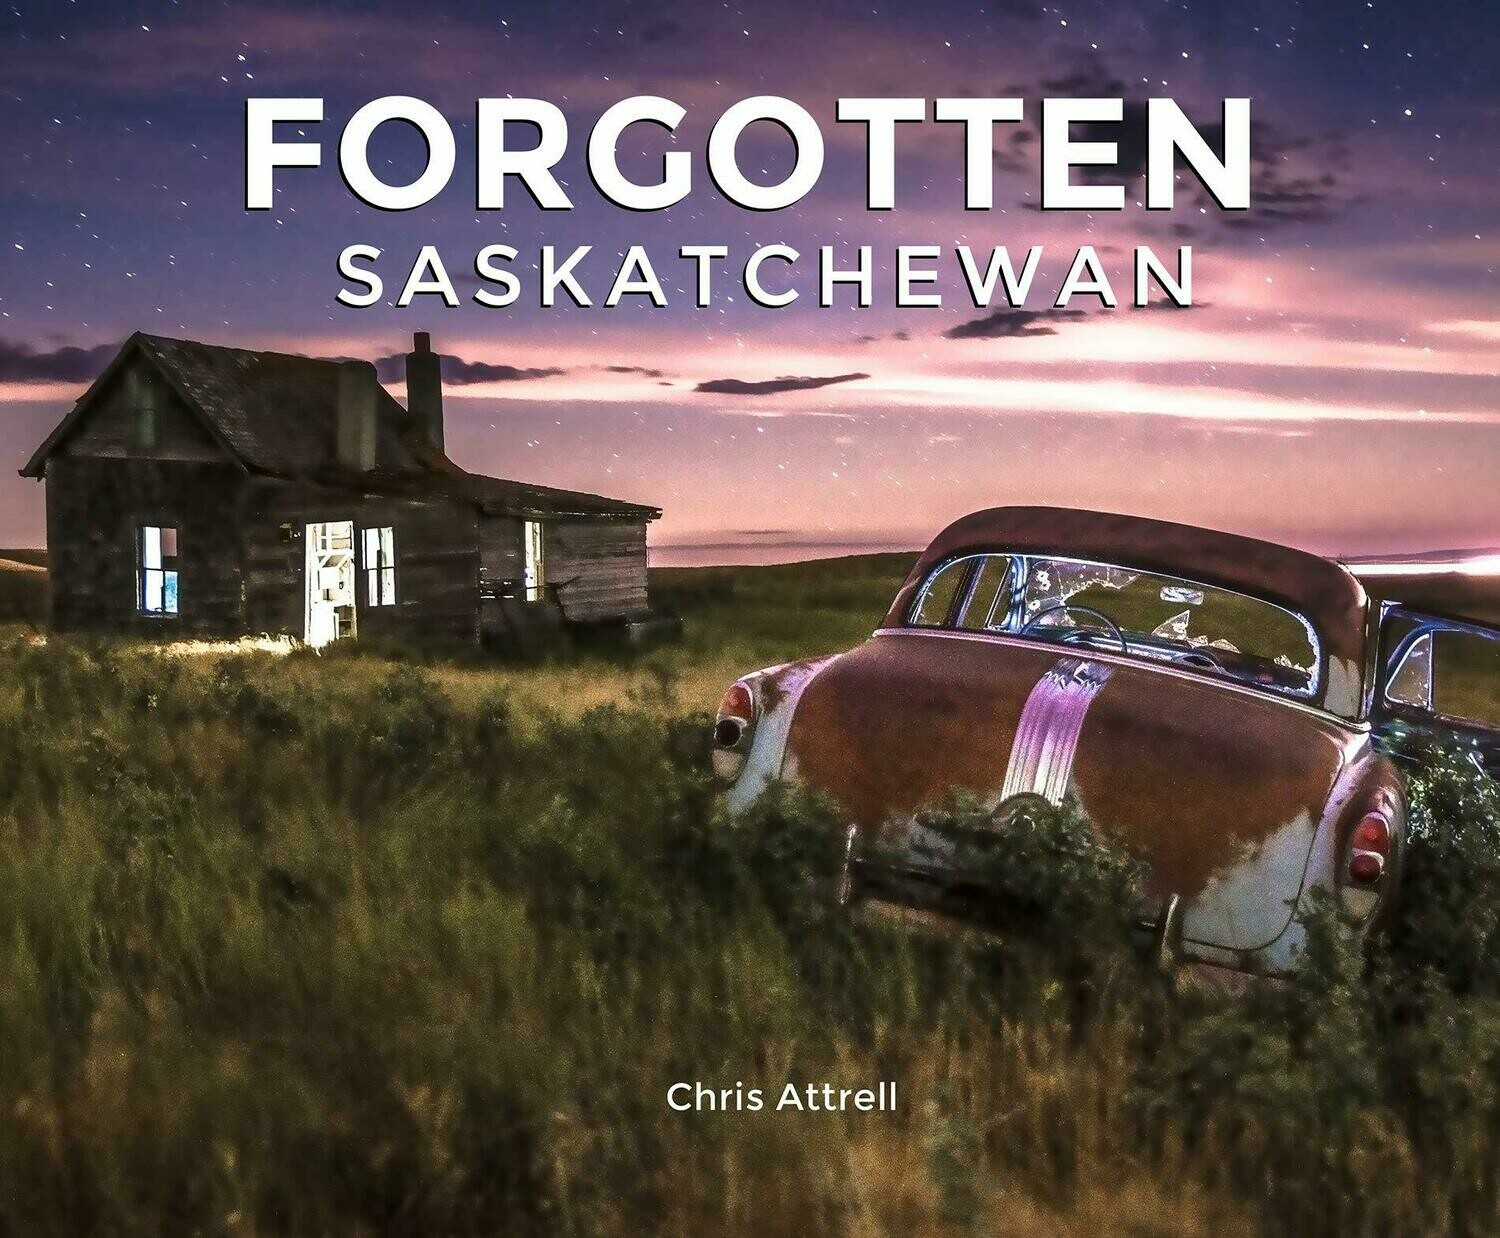 Forgotten Saskatchewan - A Photo Book by Chris Attrell